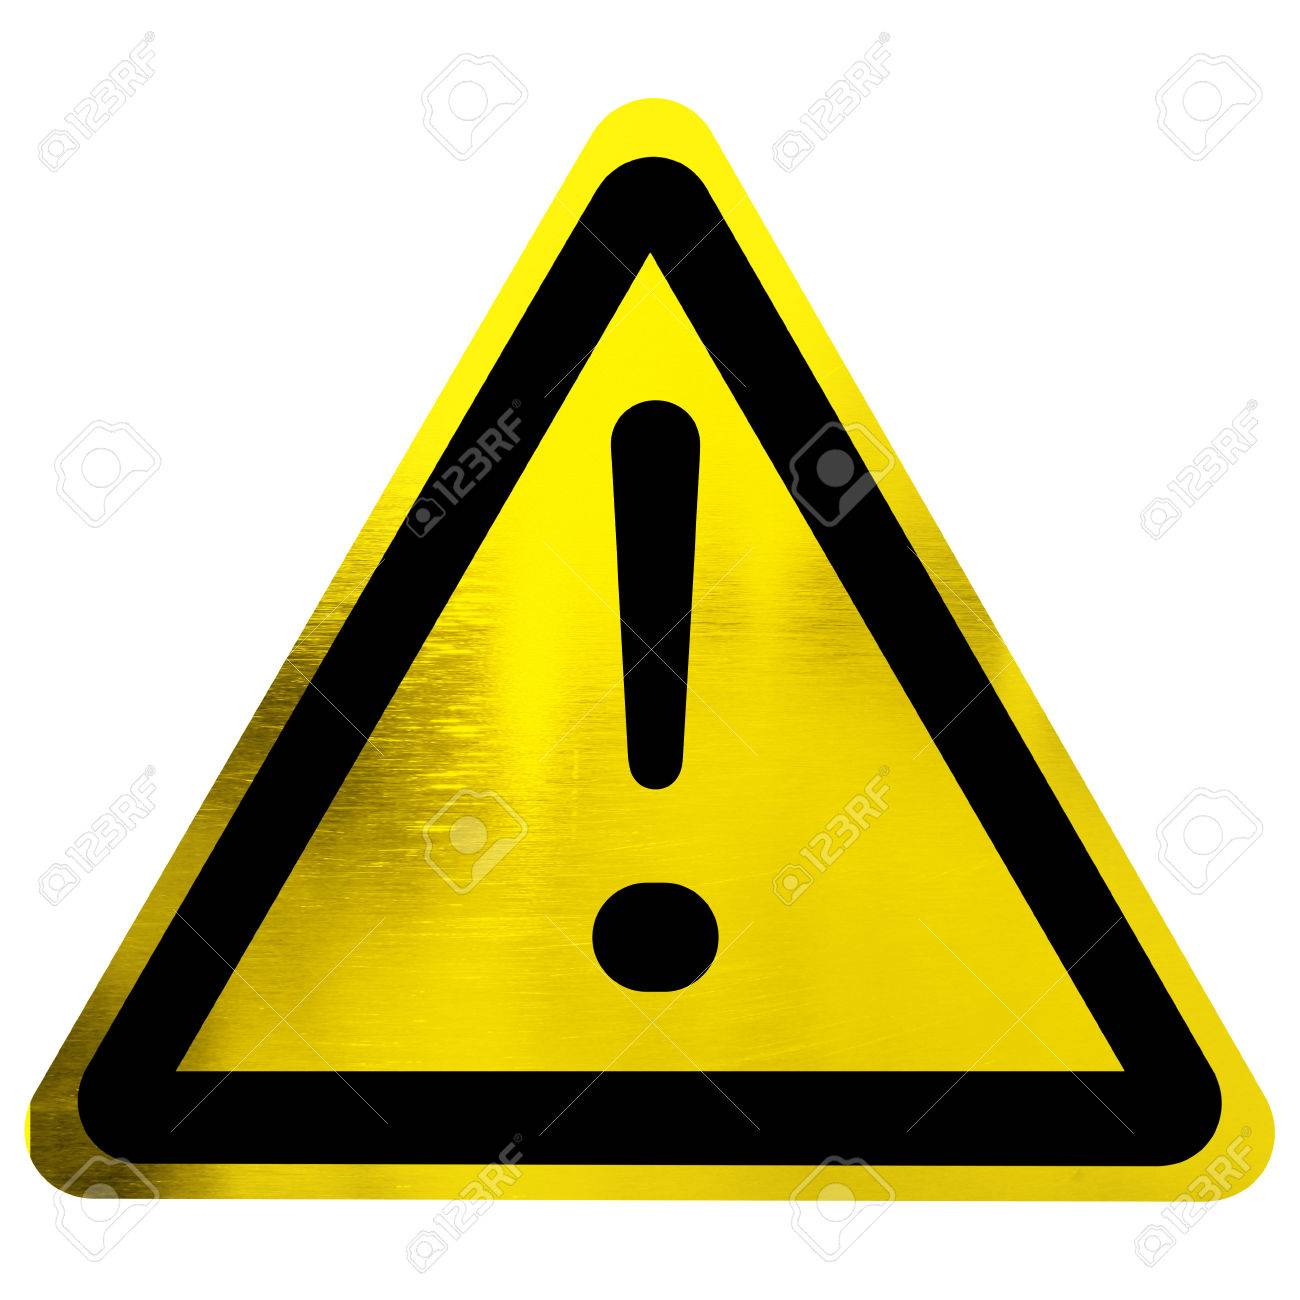 warning sign with exclamation mark isolated on a solid white background Stock Photo - 22619606